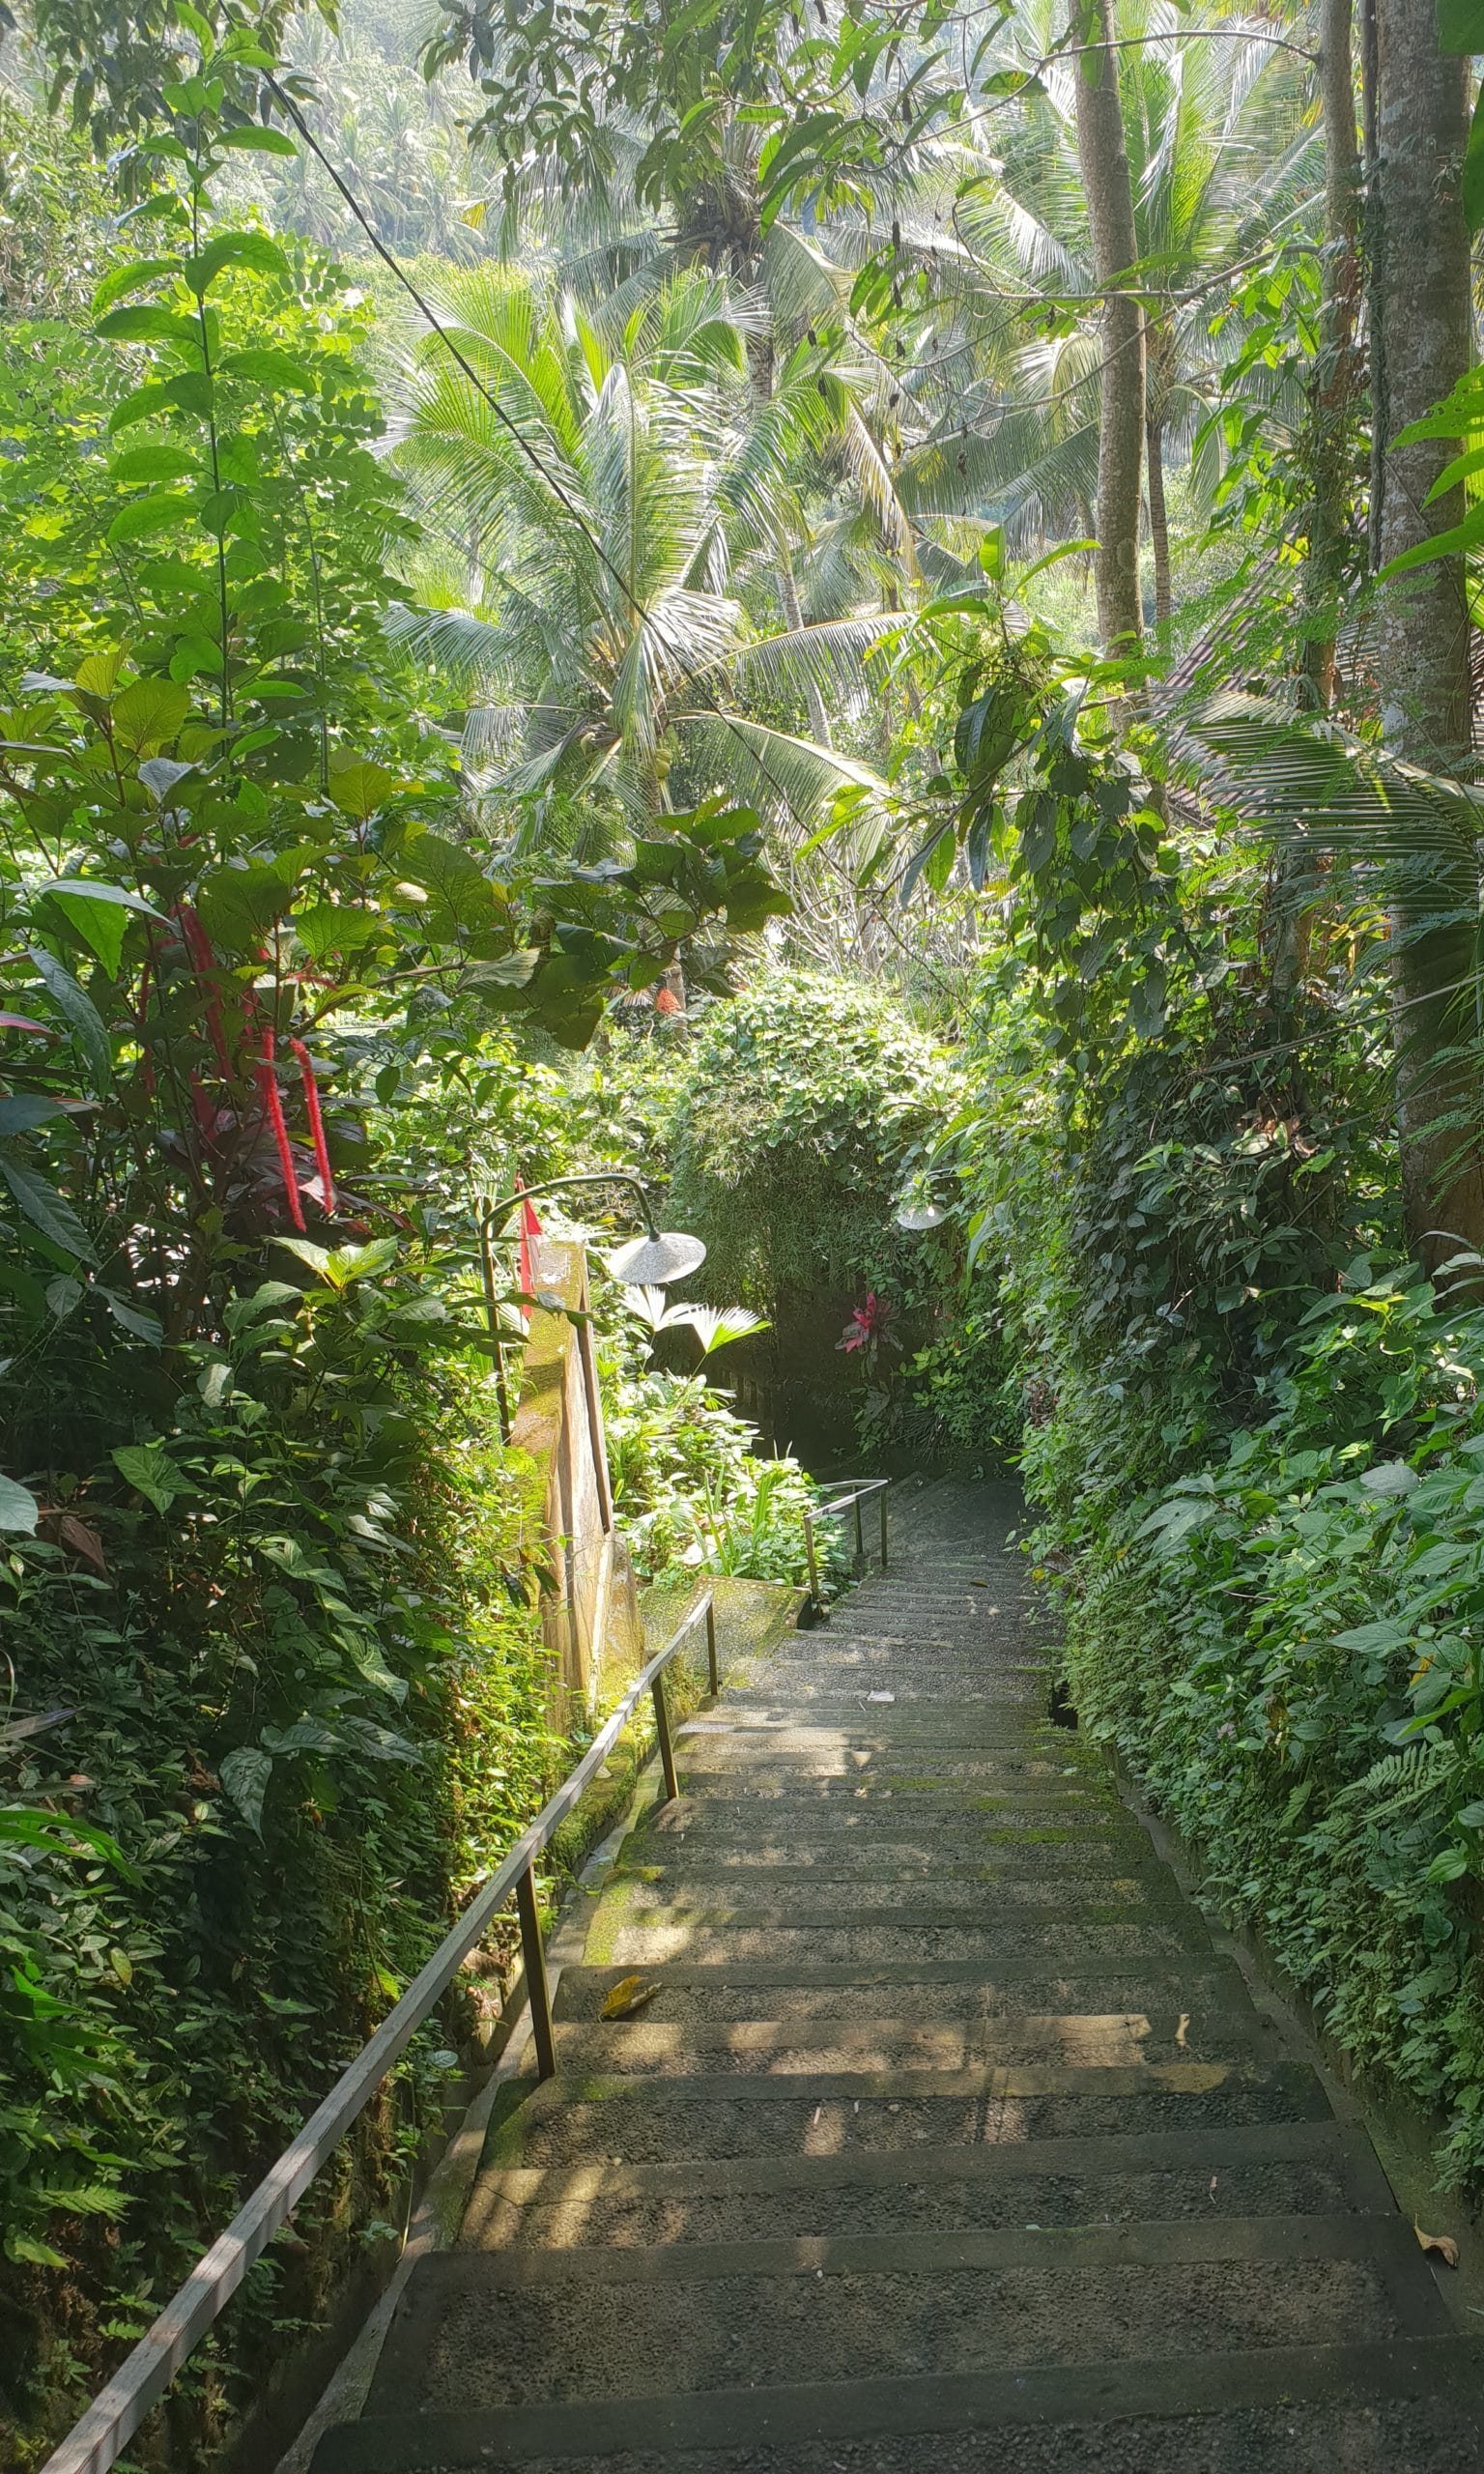 Access to the Ayung River and Temple